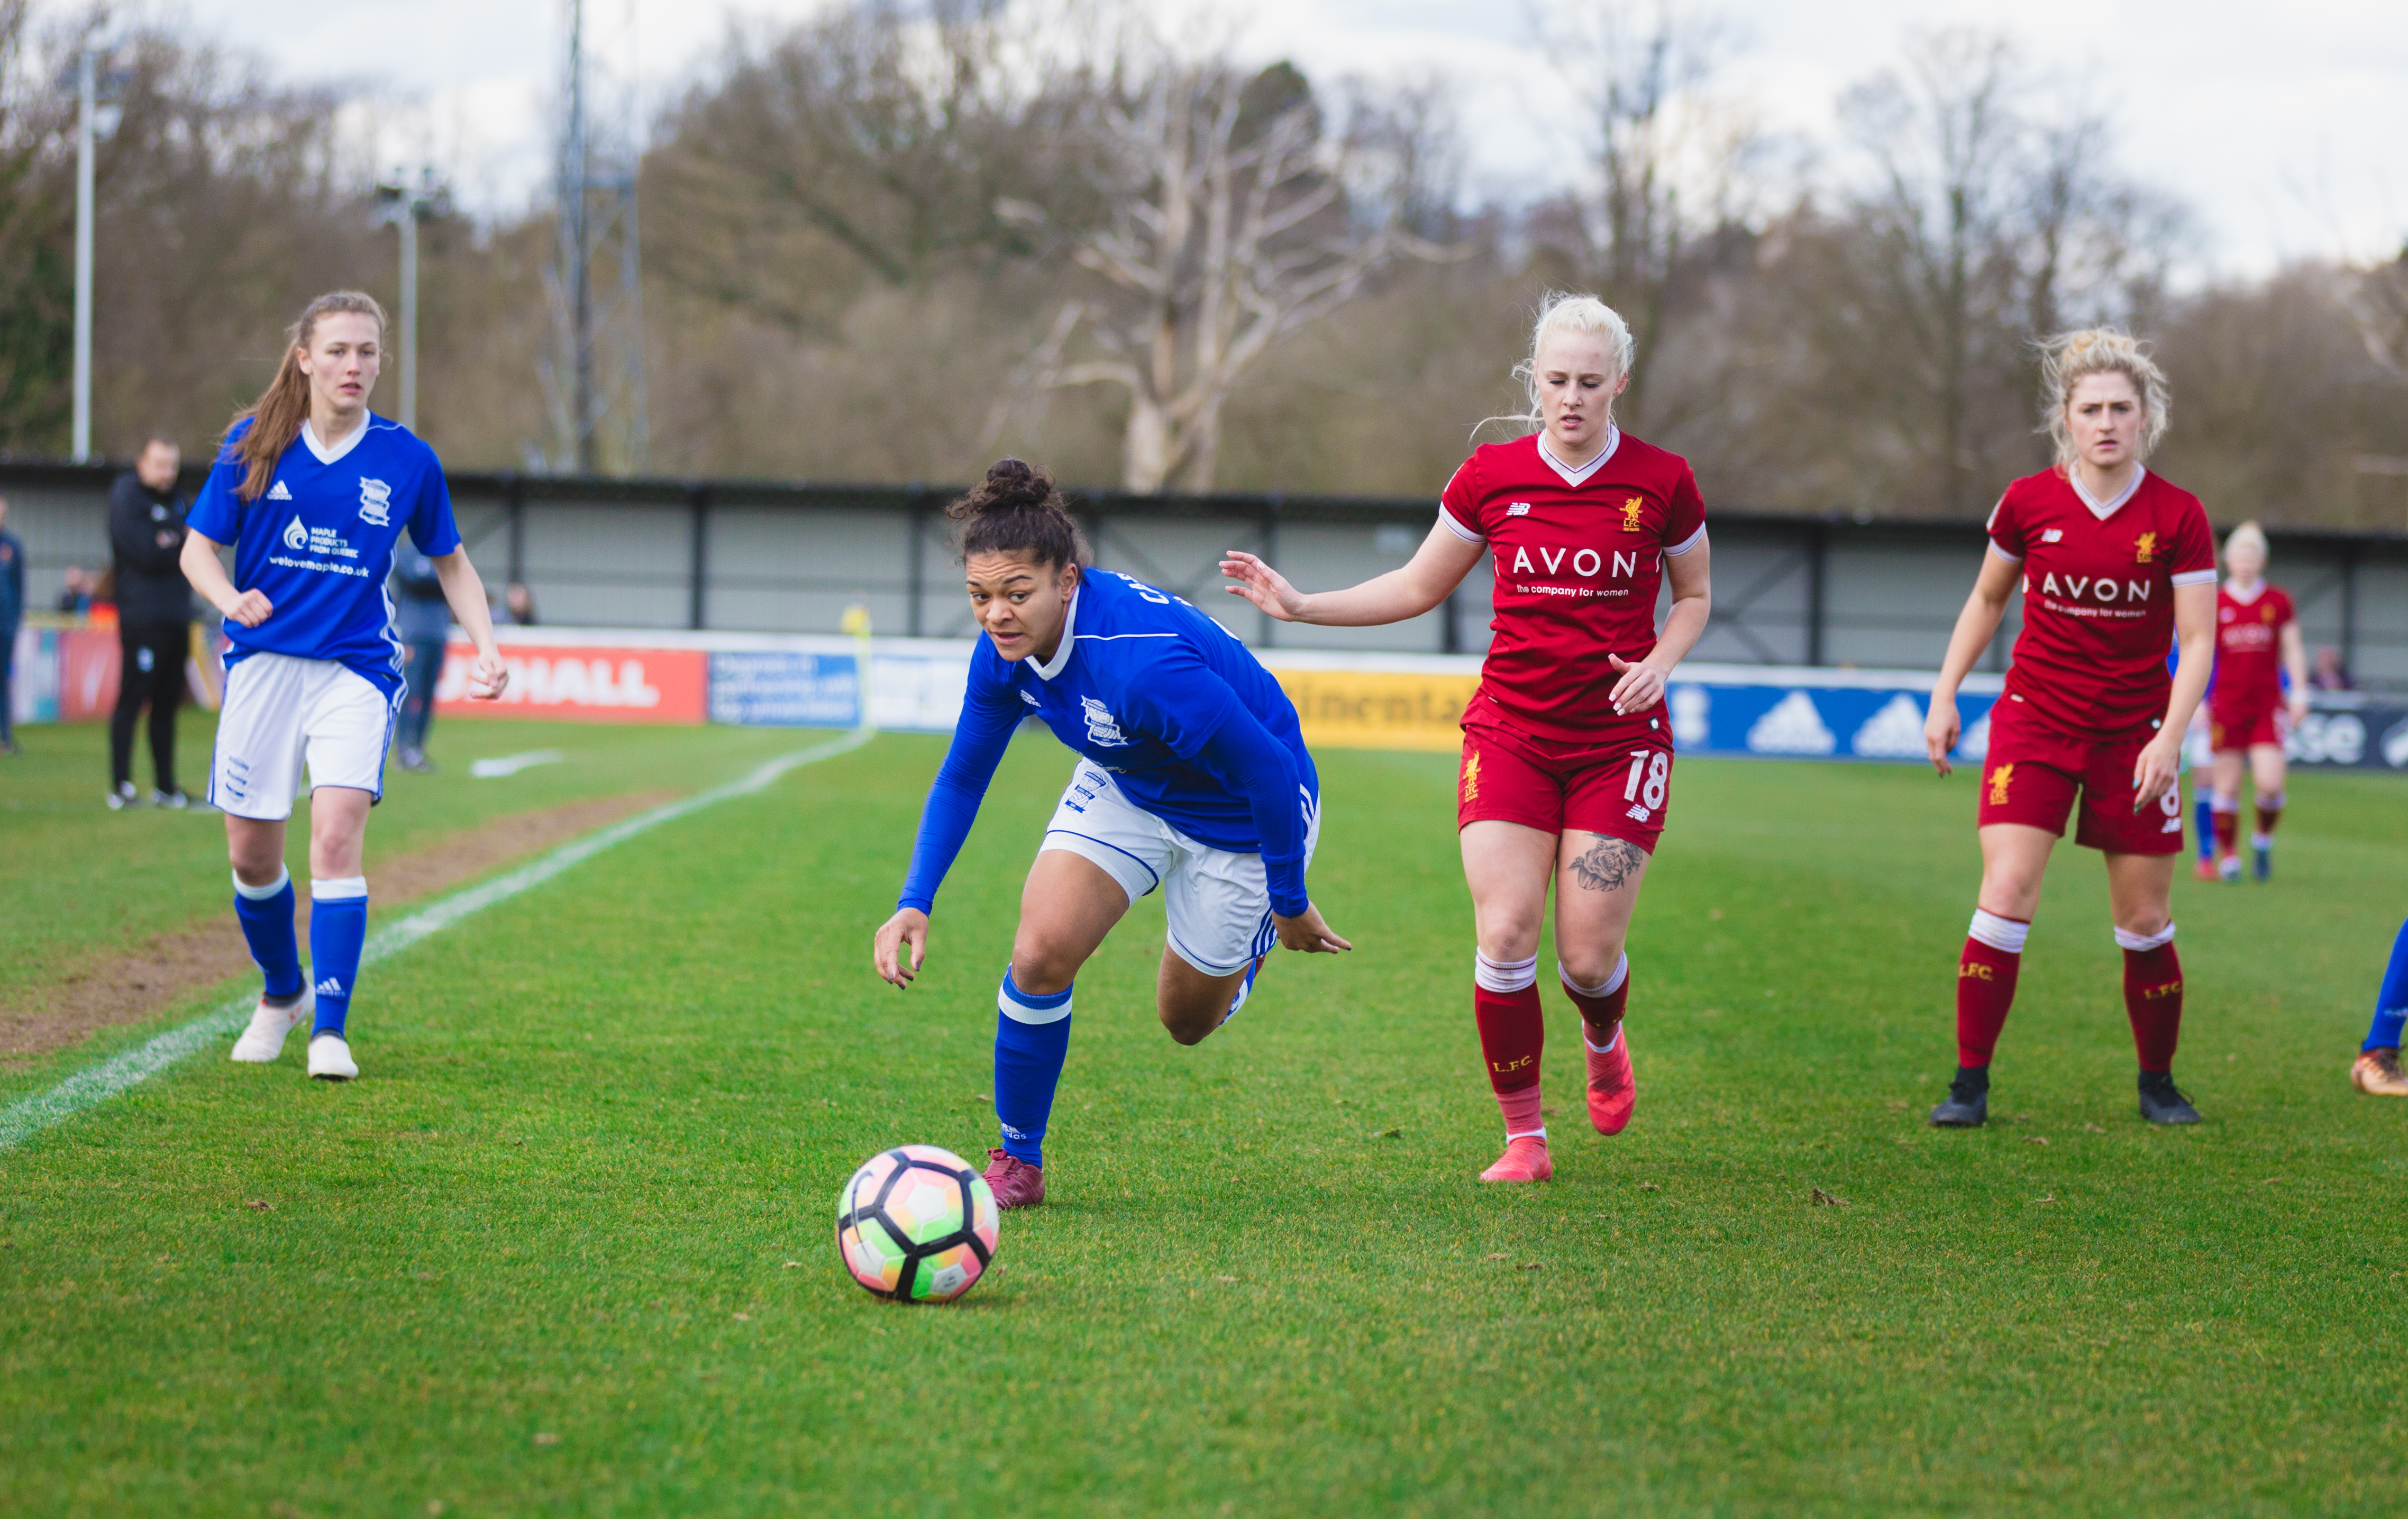 Birmingham City Ladies FC player beating opponents to the ball